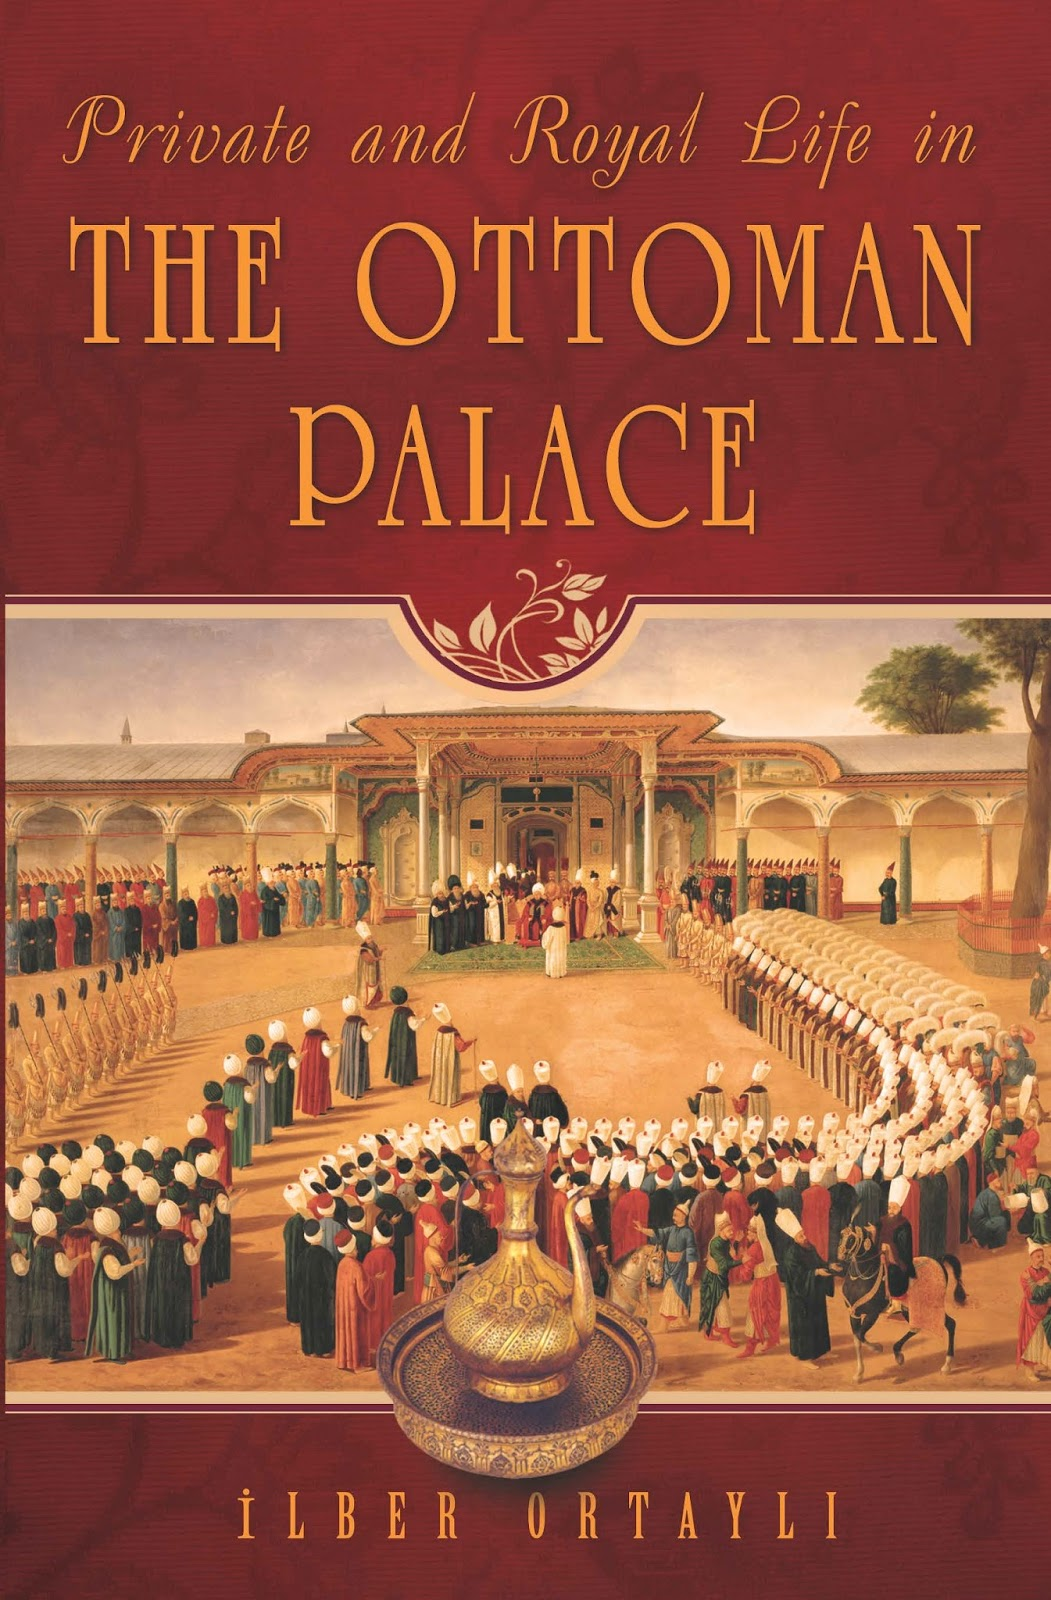 The Ottoman Empire Book (Lord Kinross - 2004) (ID:18785)